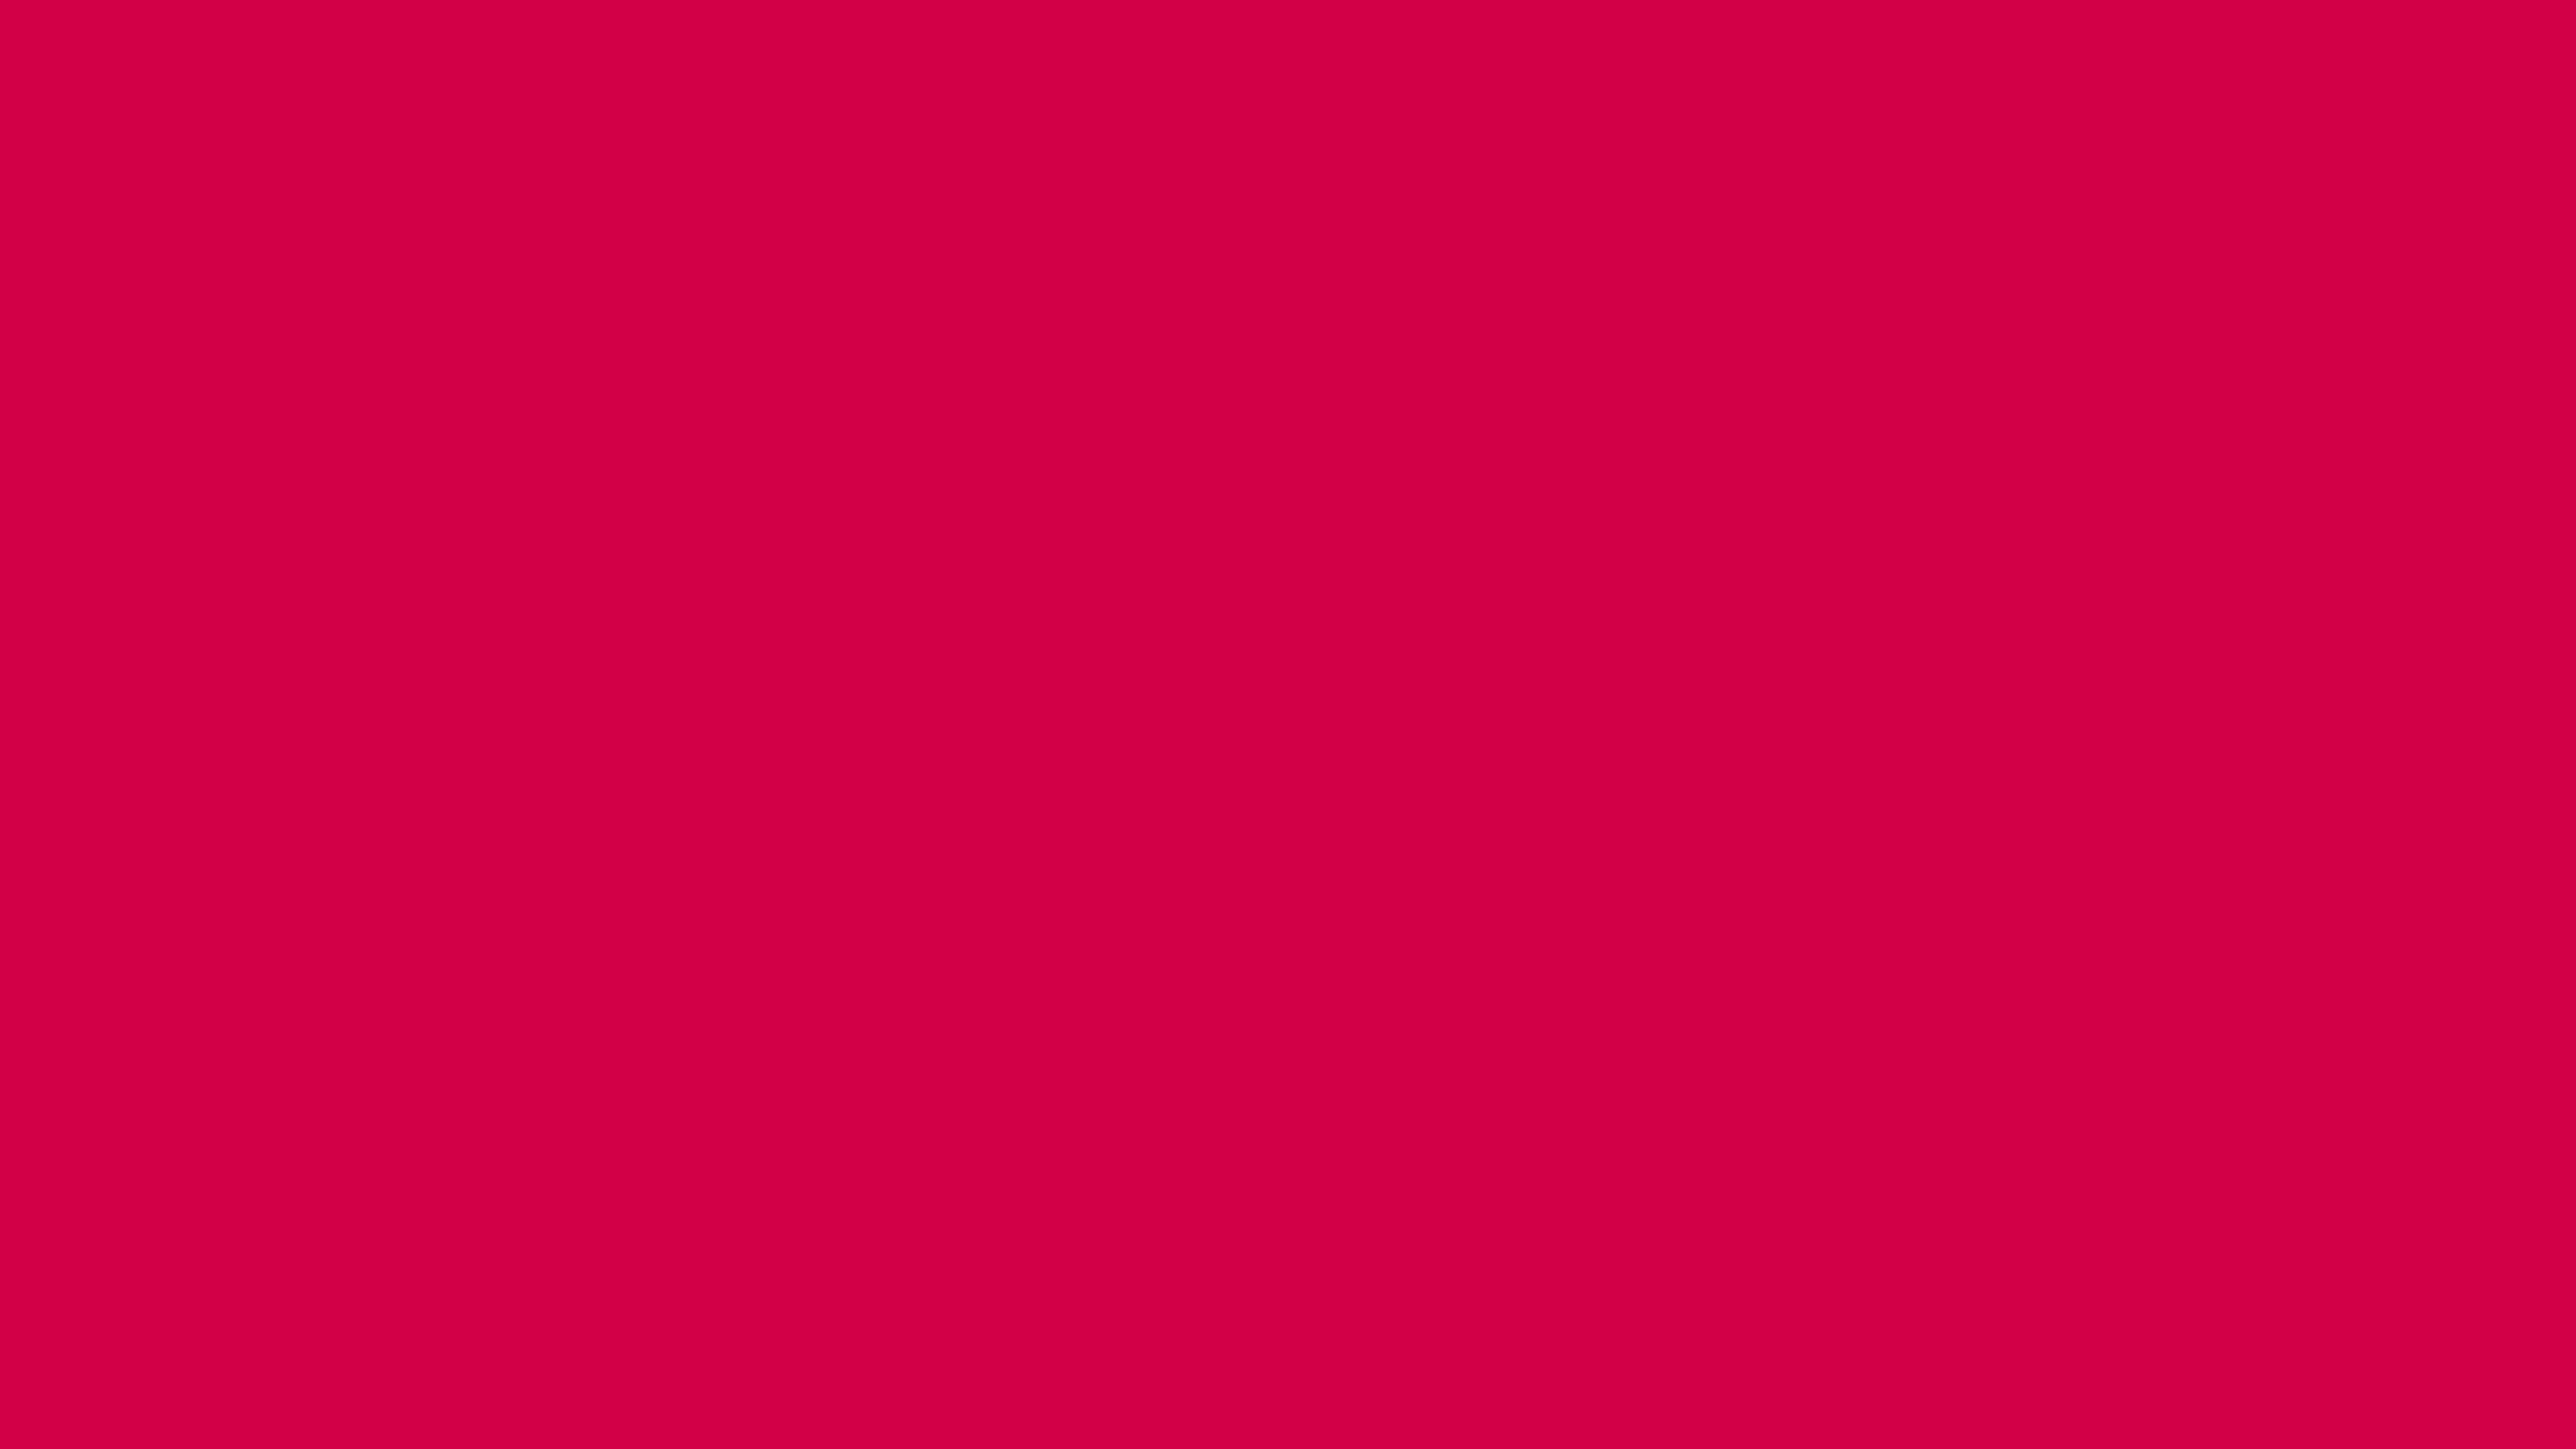 3840x2160 Spanish Carmine Solid Color Background